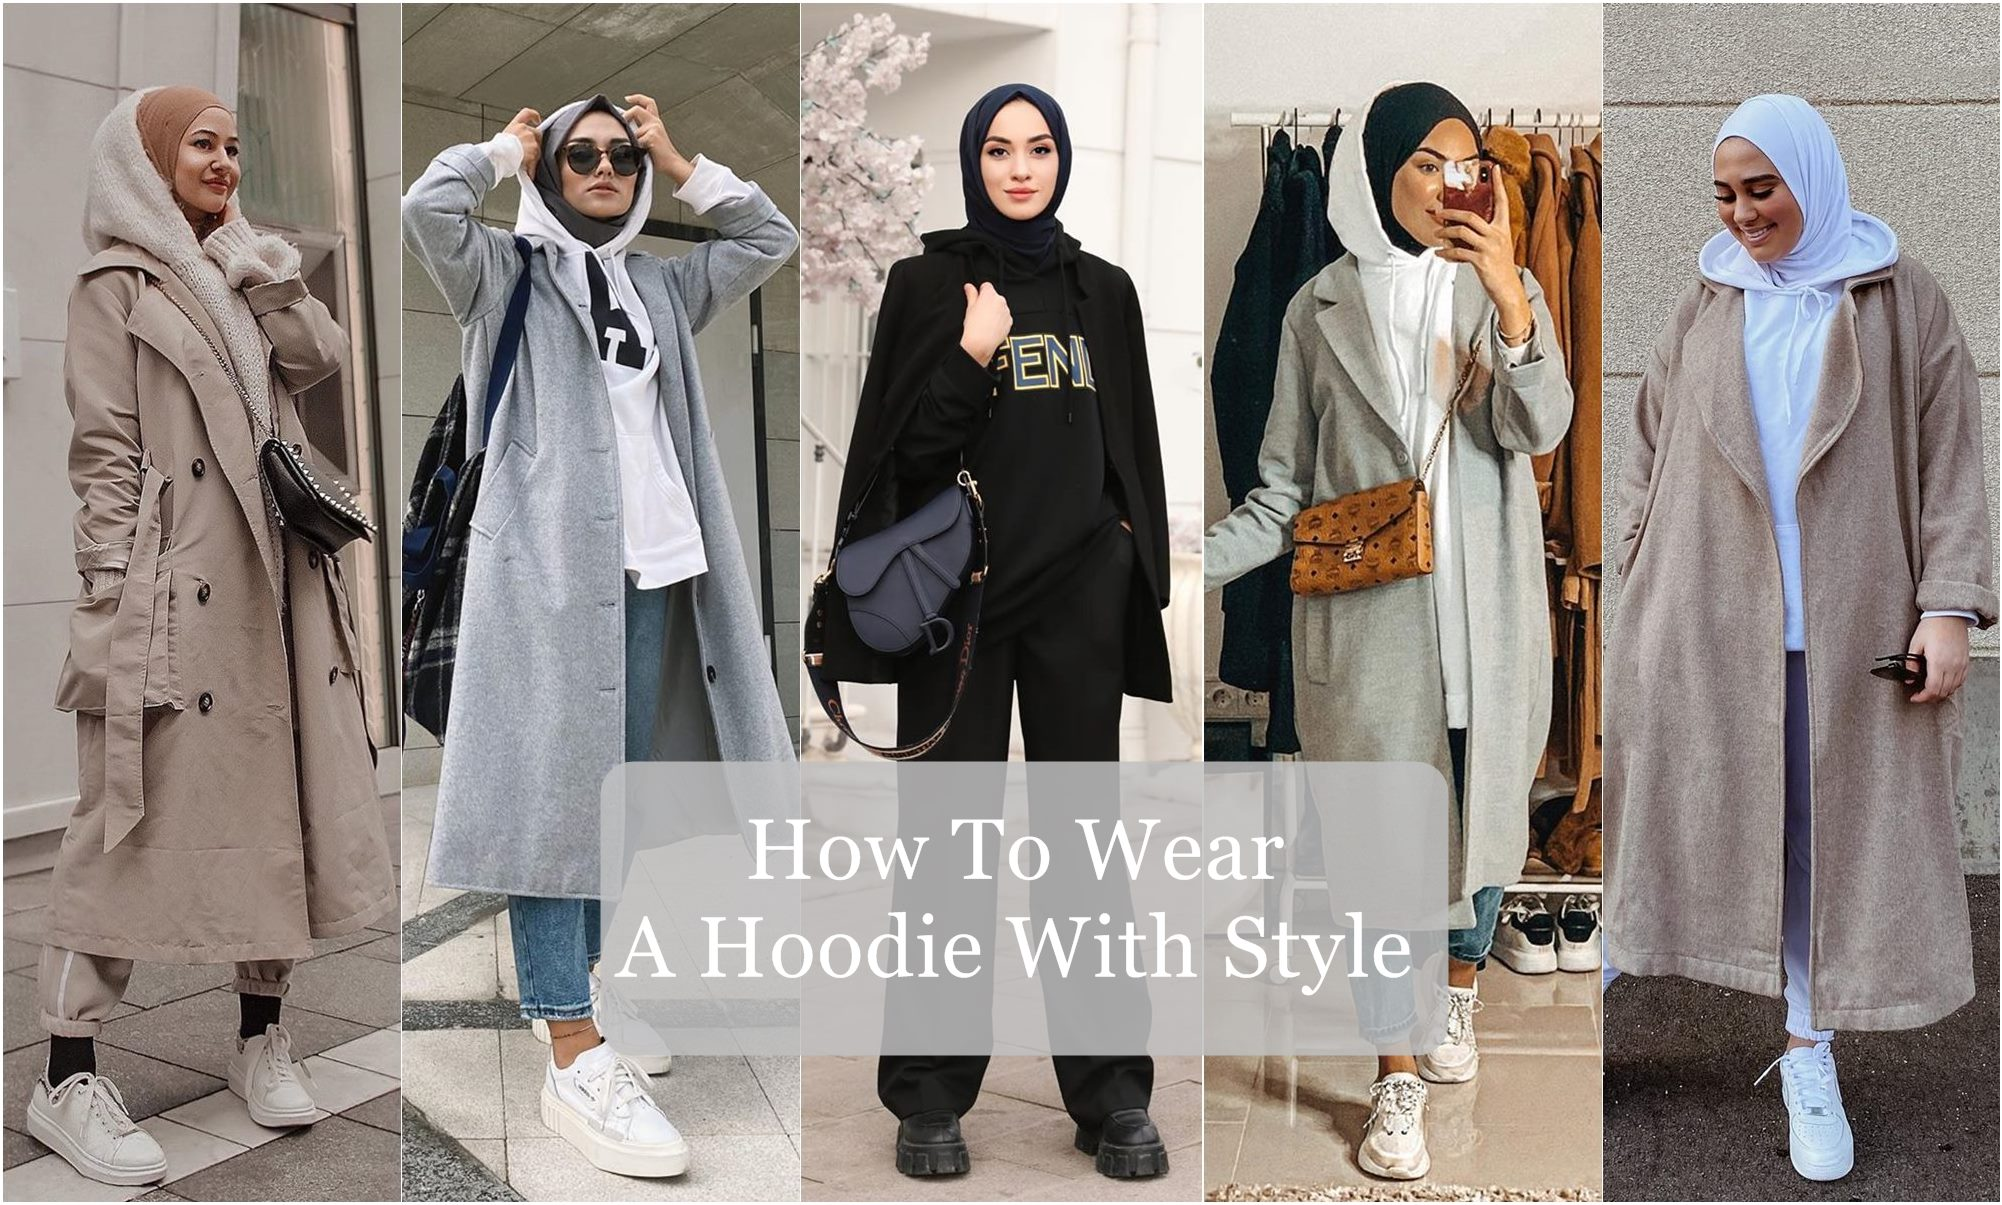 How To Wear A Hoodie With Style - Hijab Fashion Inspiration